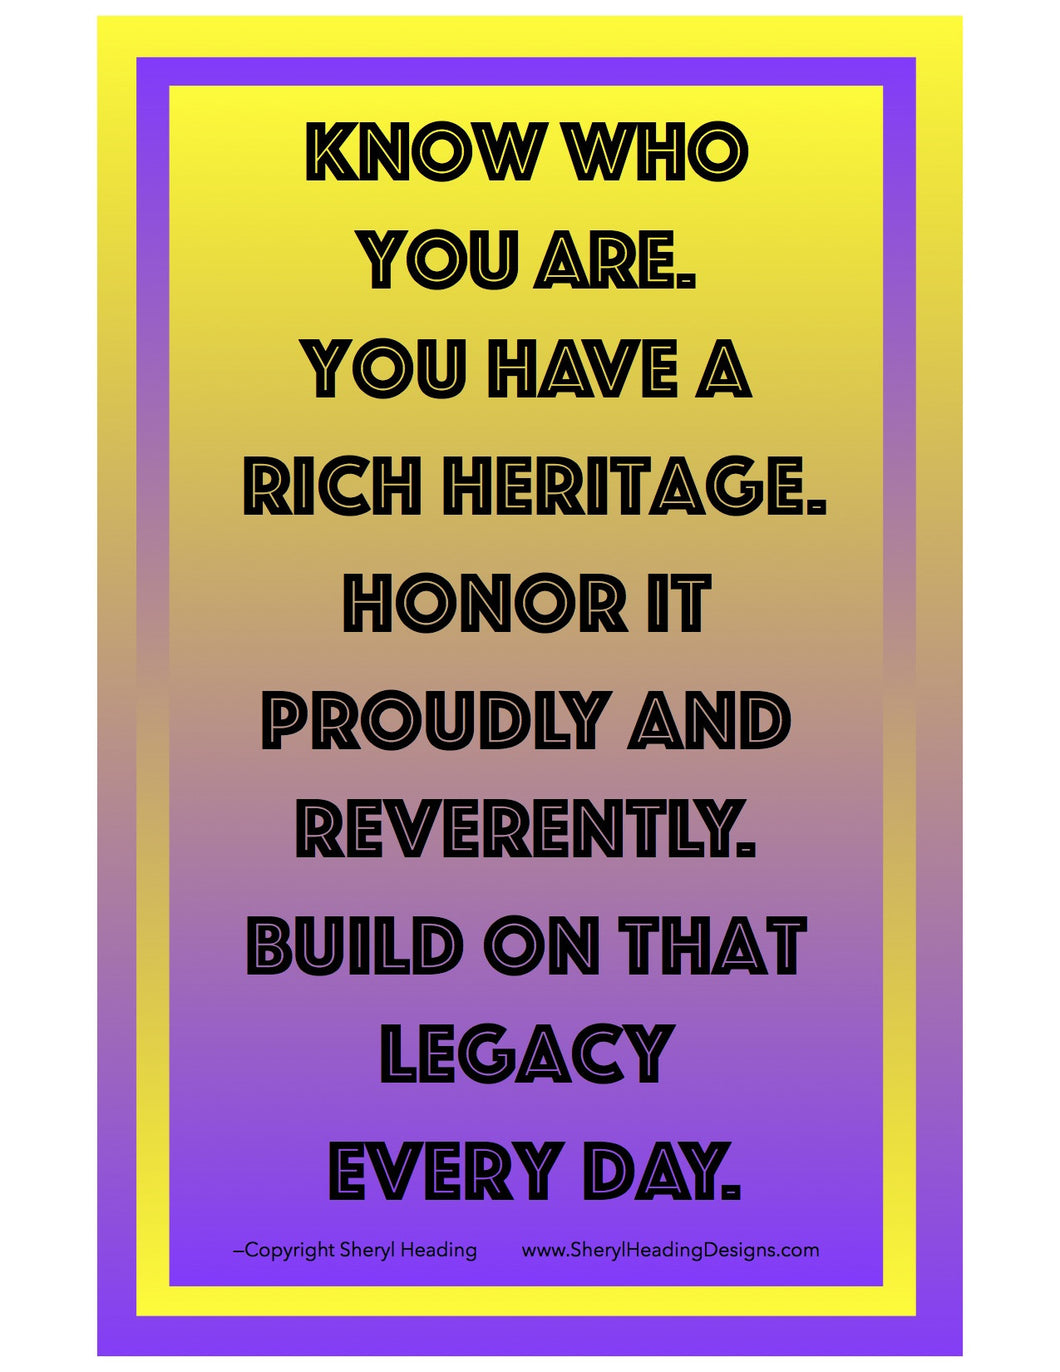 Know Who You Are. You have A Rich Heritage Poster - Sheryl Heading Designs